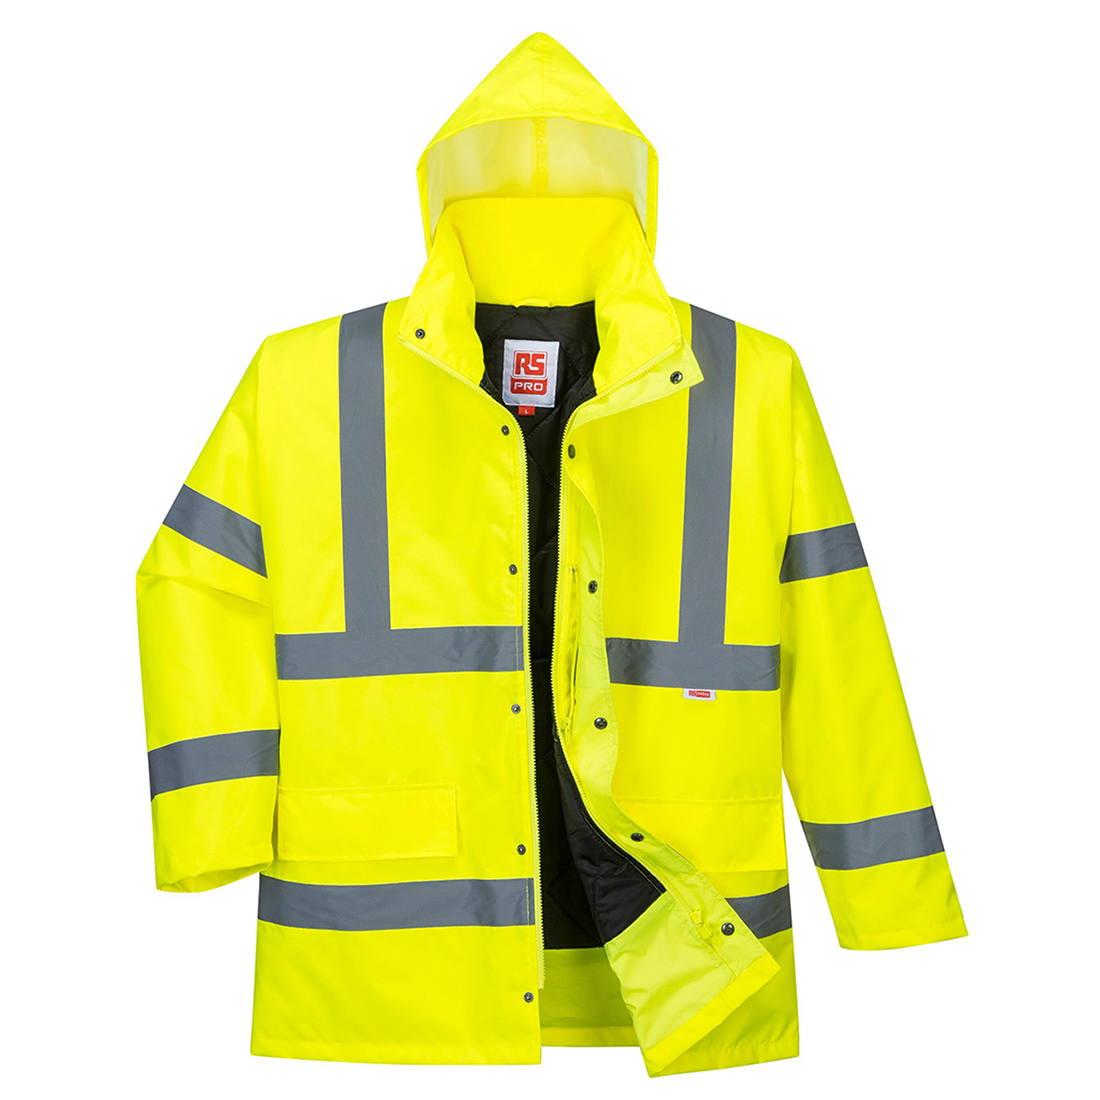 RS PRO Yellow Unisex Hi Vis Jacket, L